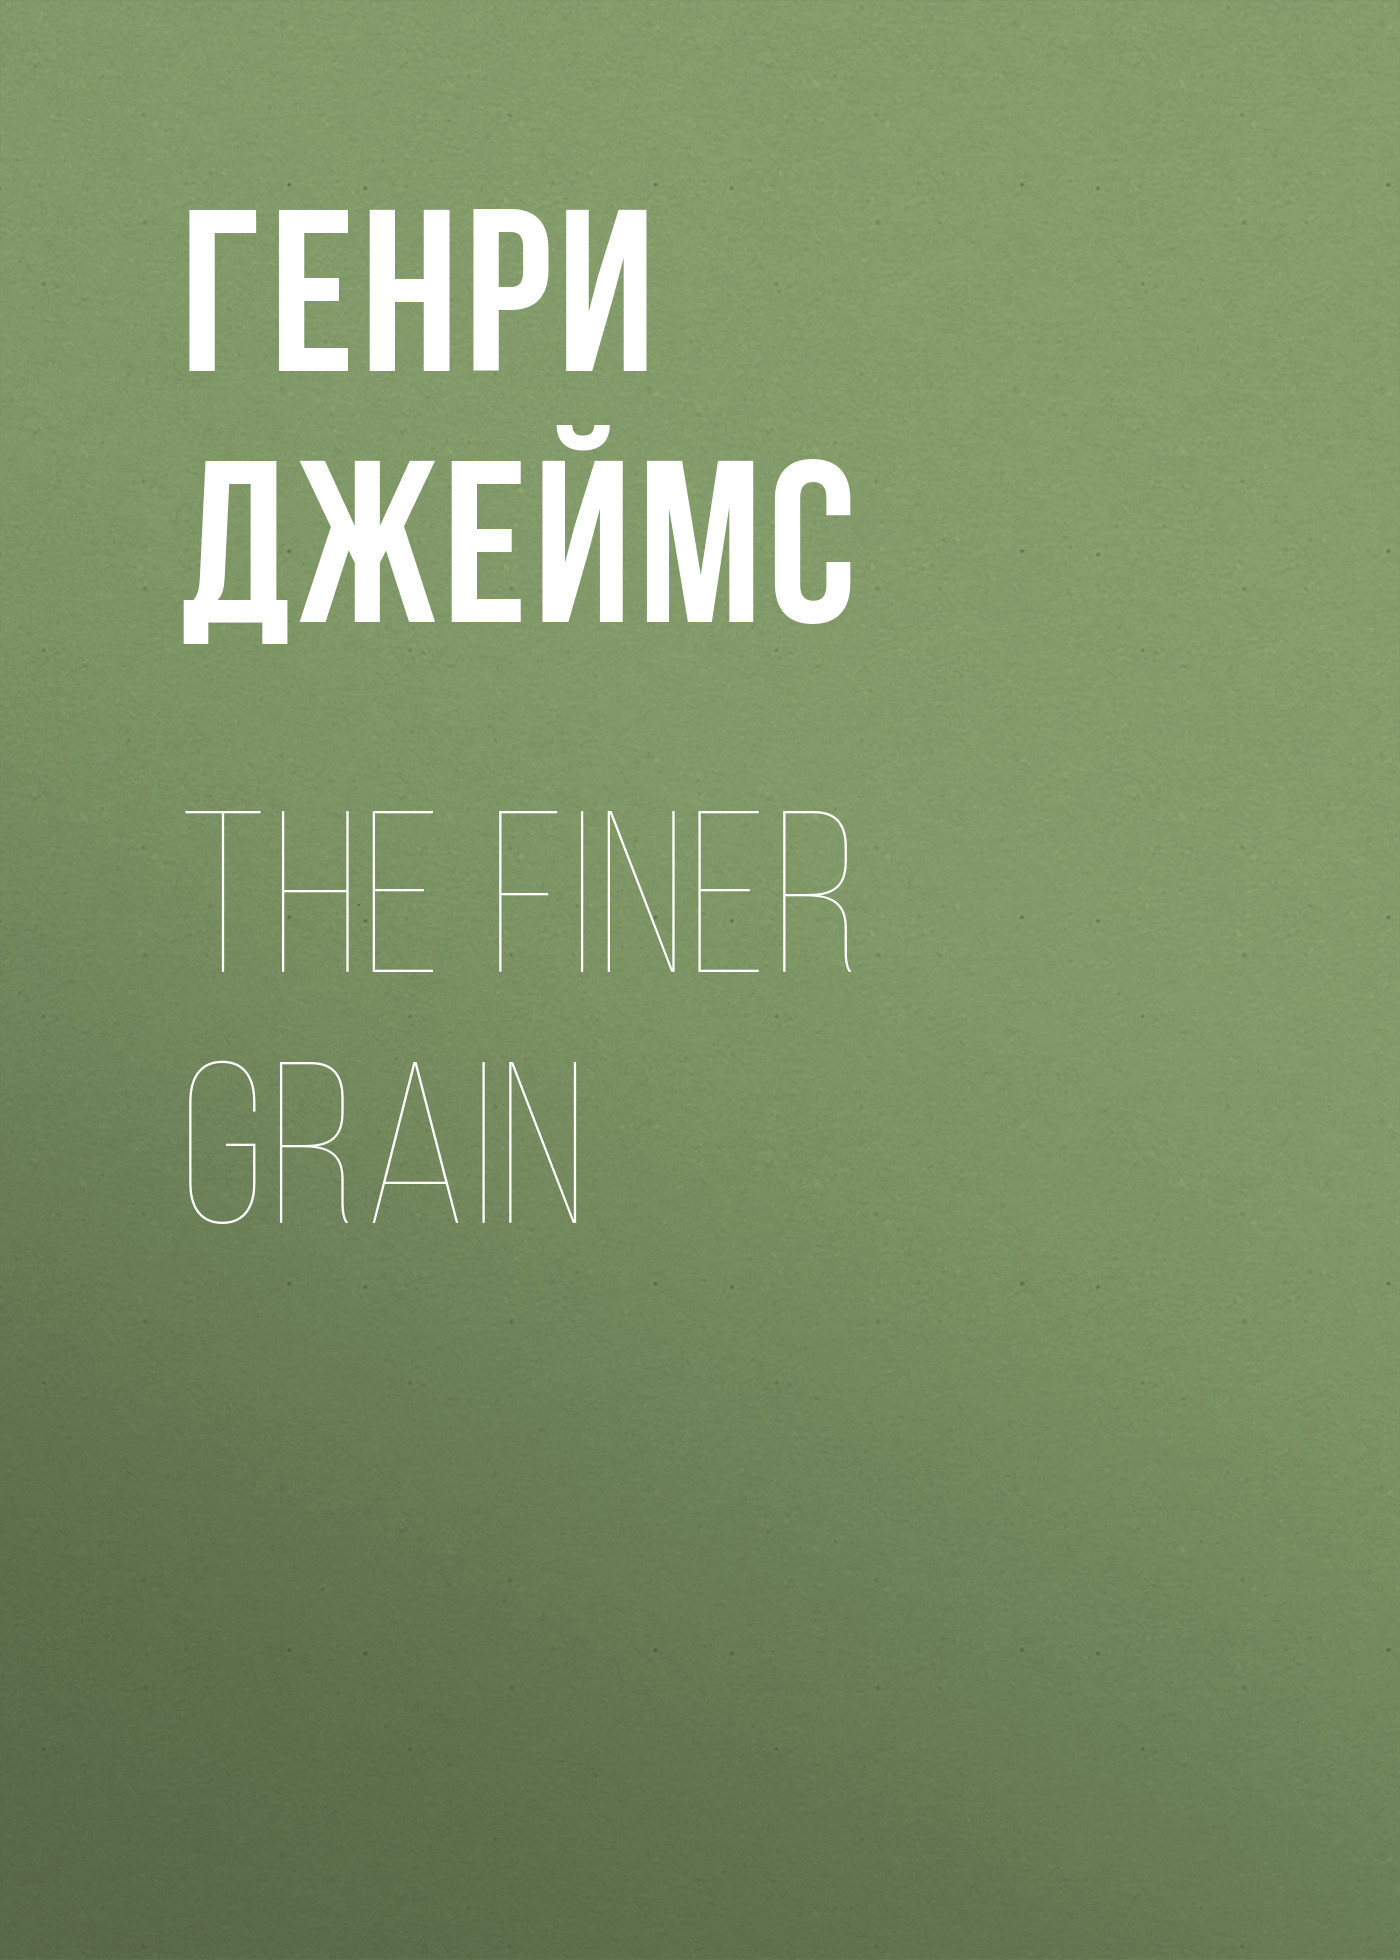 Генри Джеймс The Finer Grain against the grain